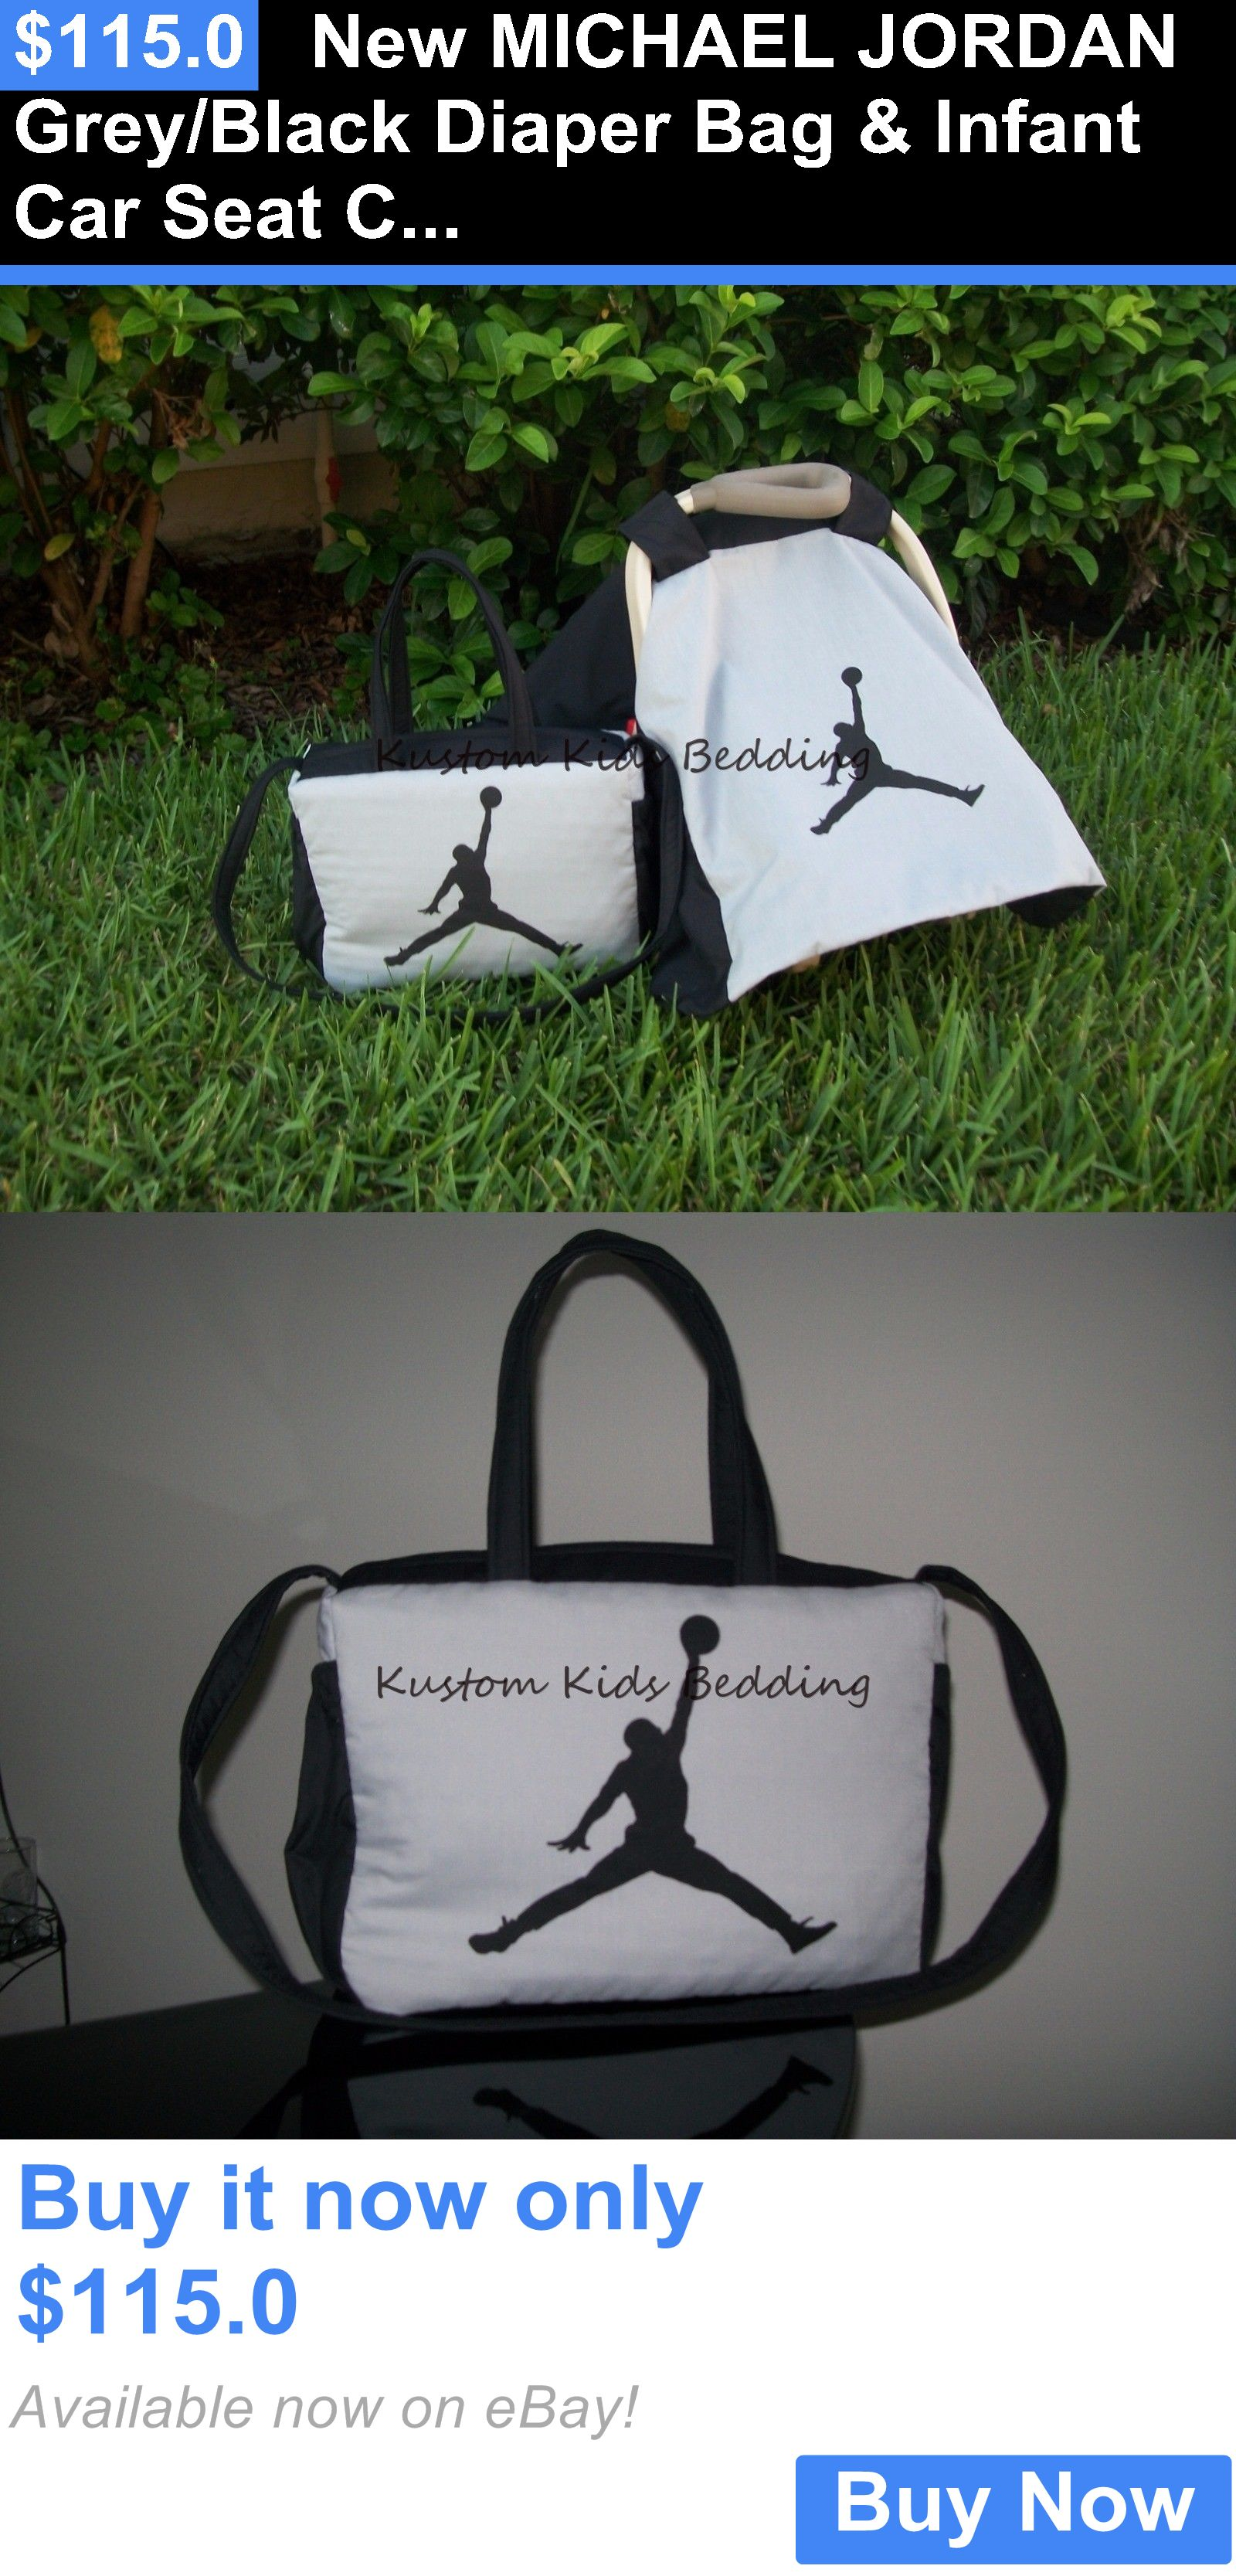 Baby New Michael Jordan Grey Black Diaper Bag And Infant Car Seat Carrier Canopy Cover It Now Only 115 0